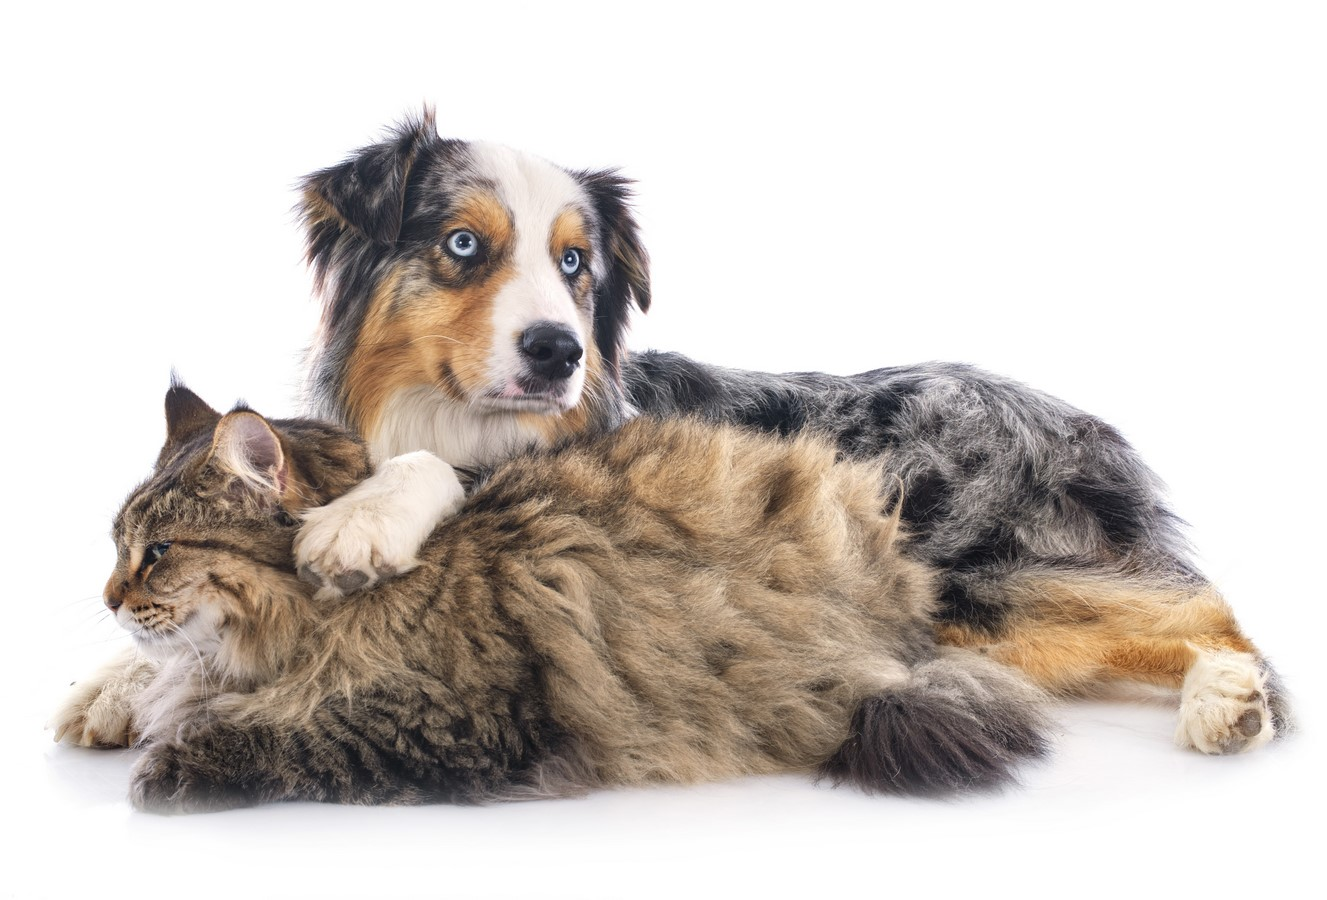 Communication intuitive animale Bas Rhin : Chien et chat